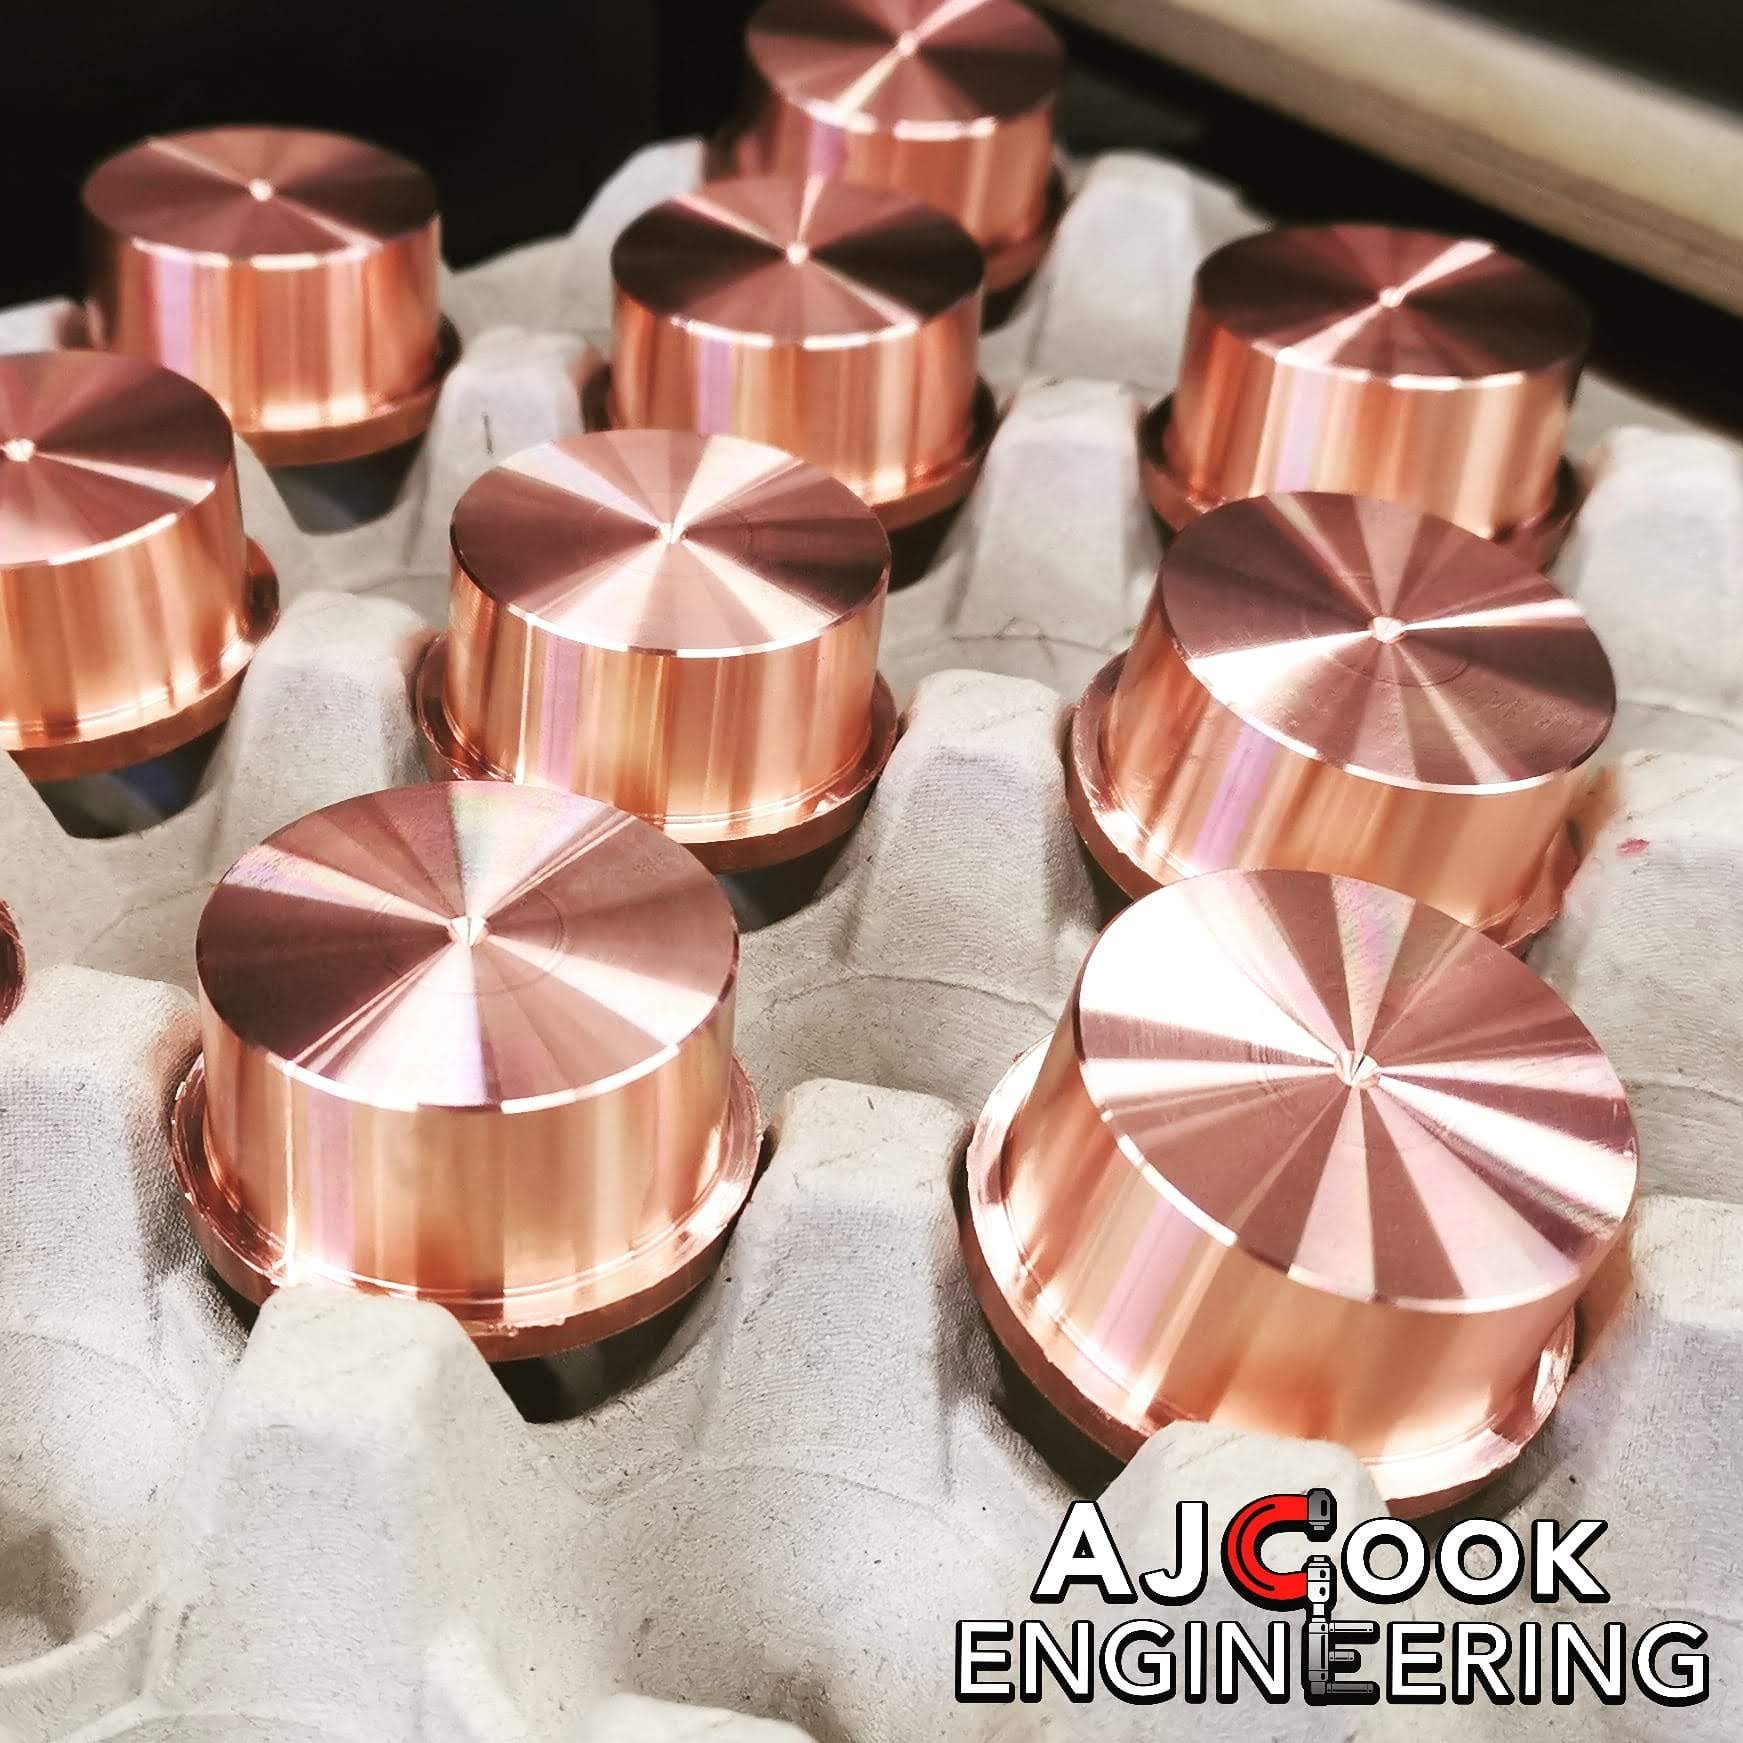 CNC Turned copper components